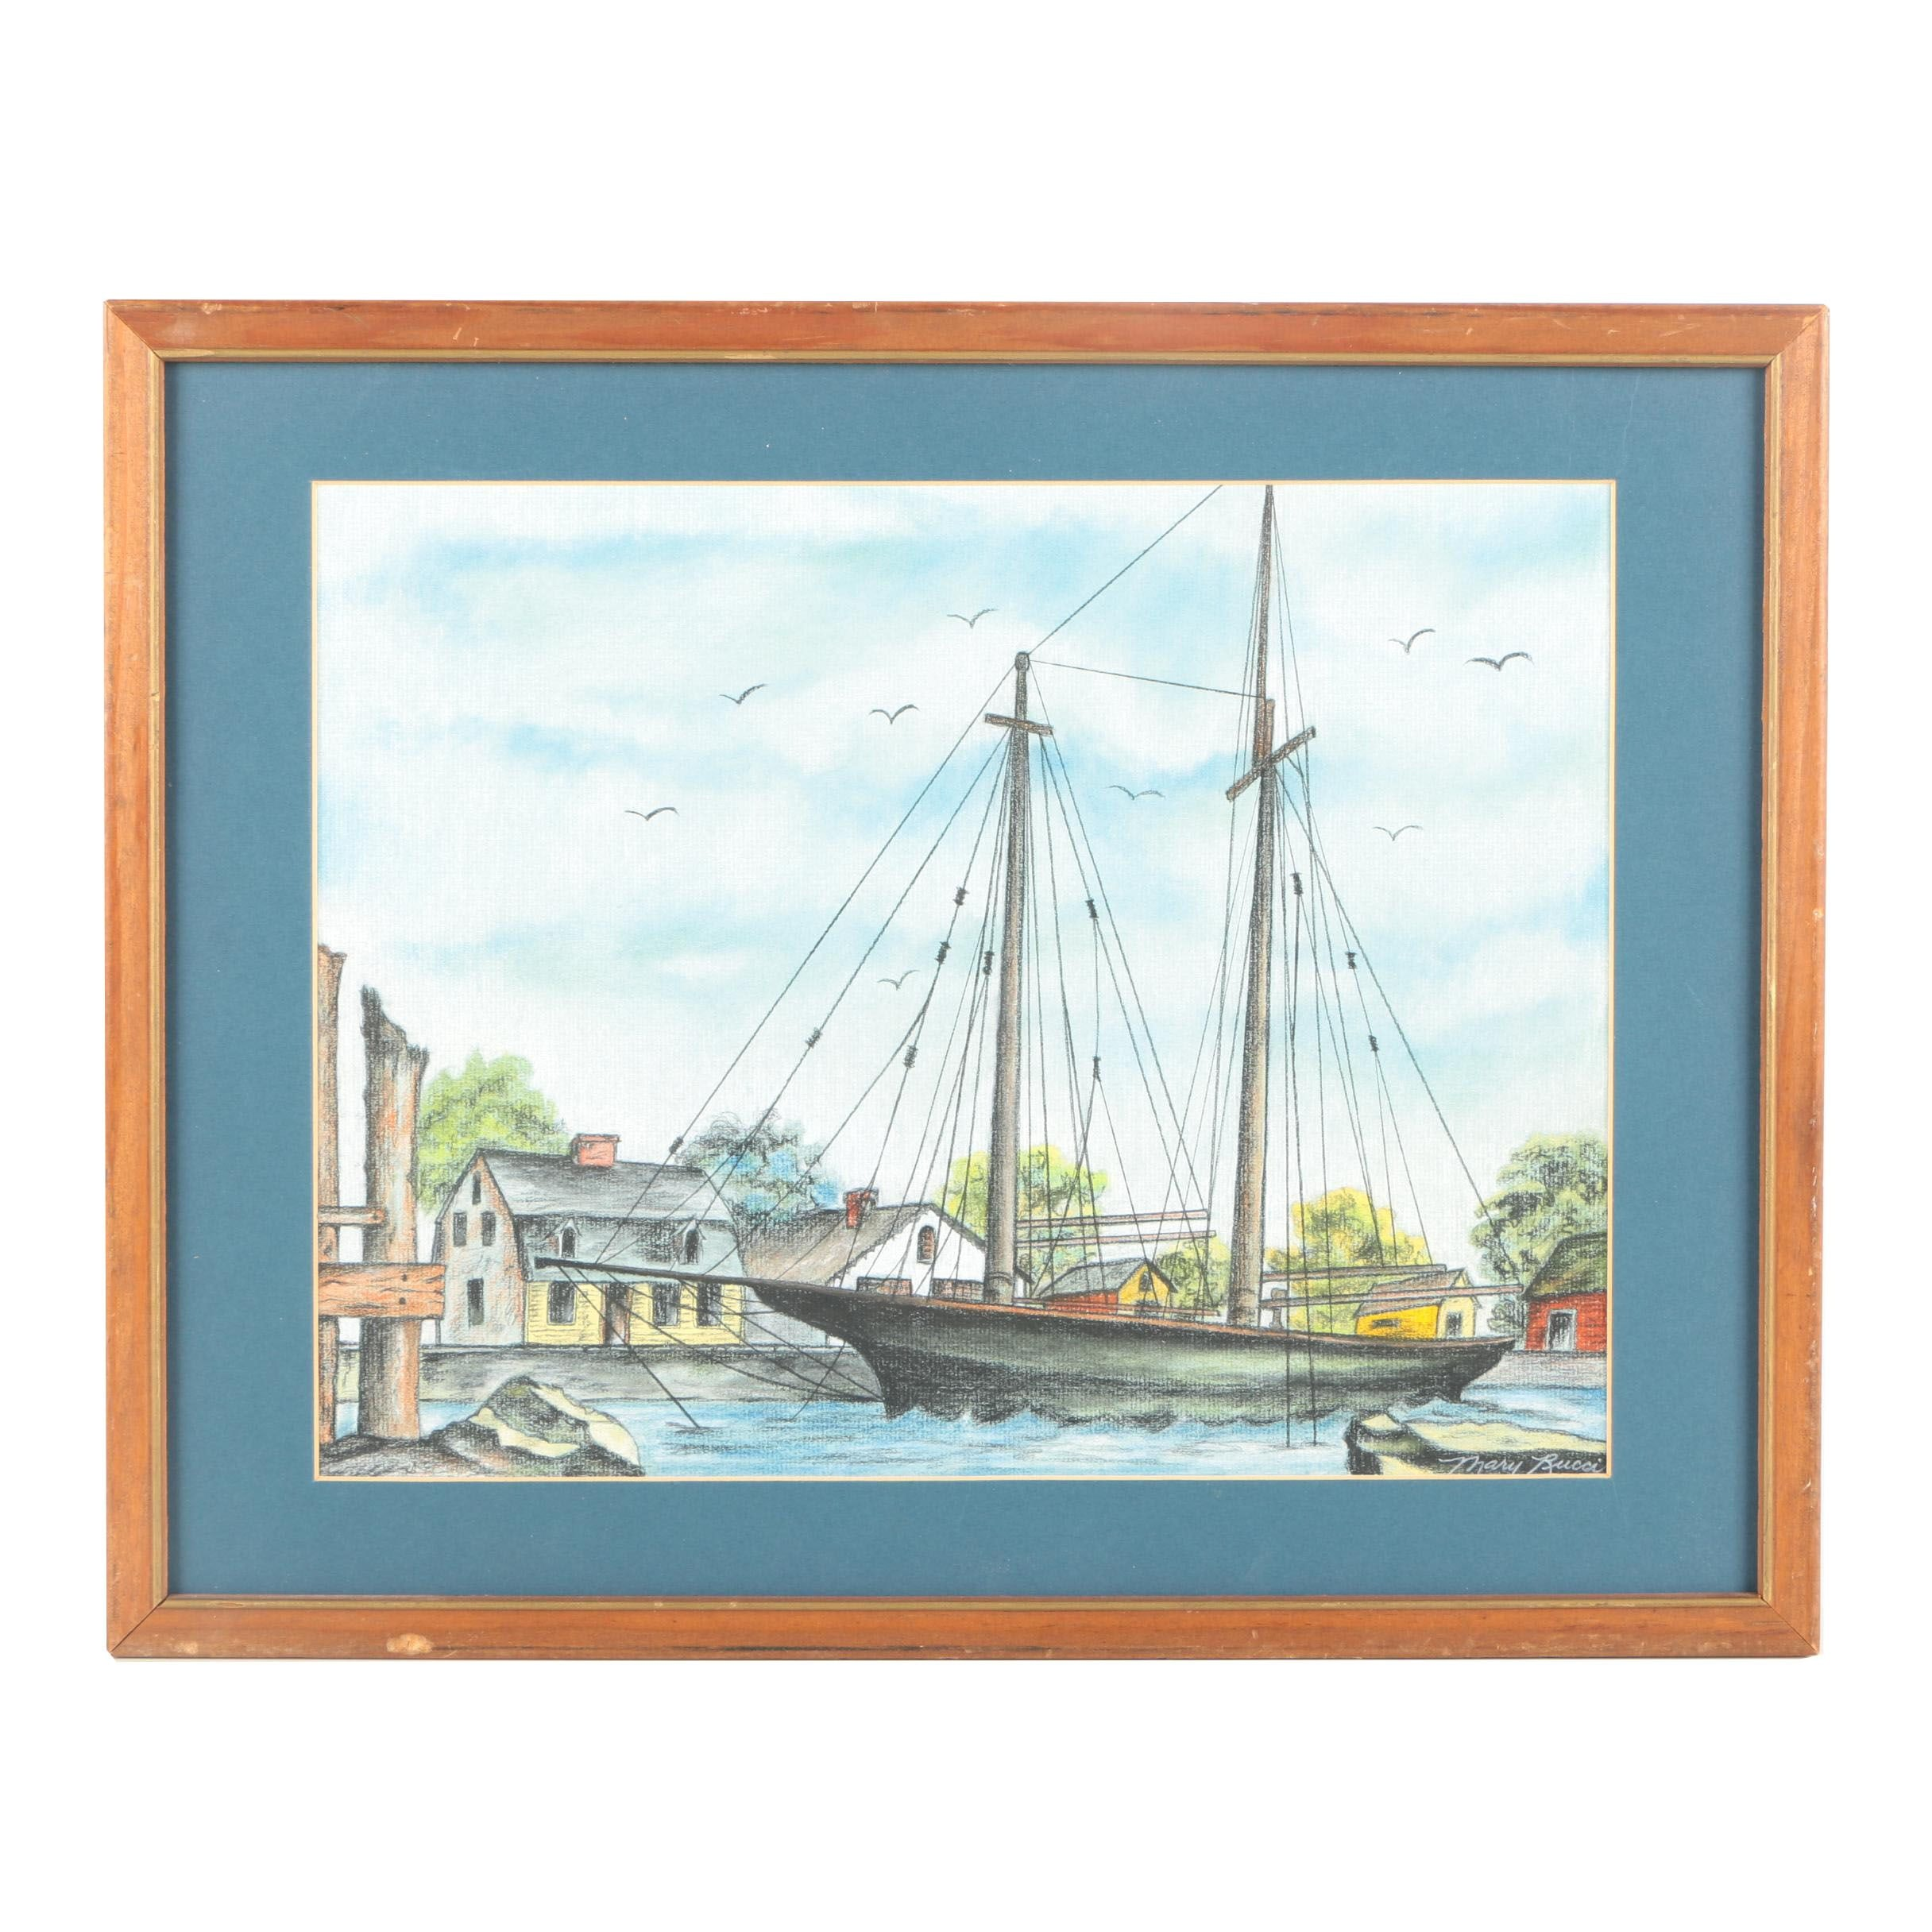 Mary Rucci Pastel Drawing of a Sailboat in a Harbor